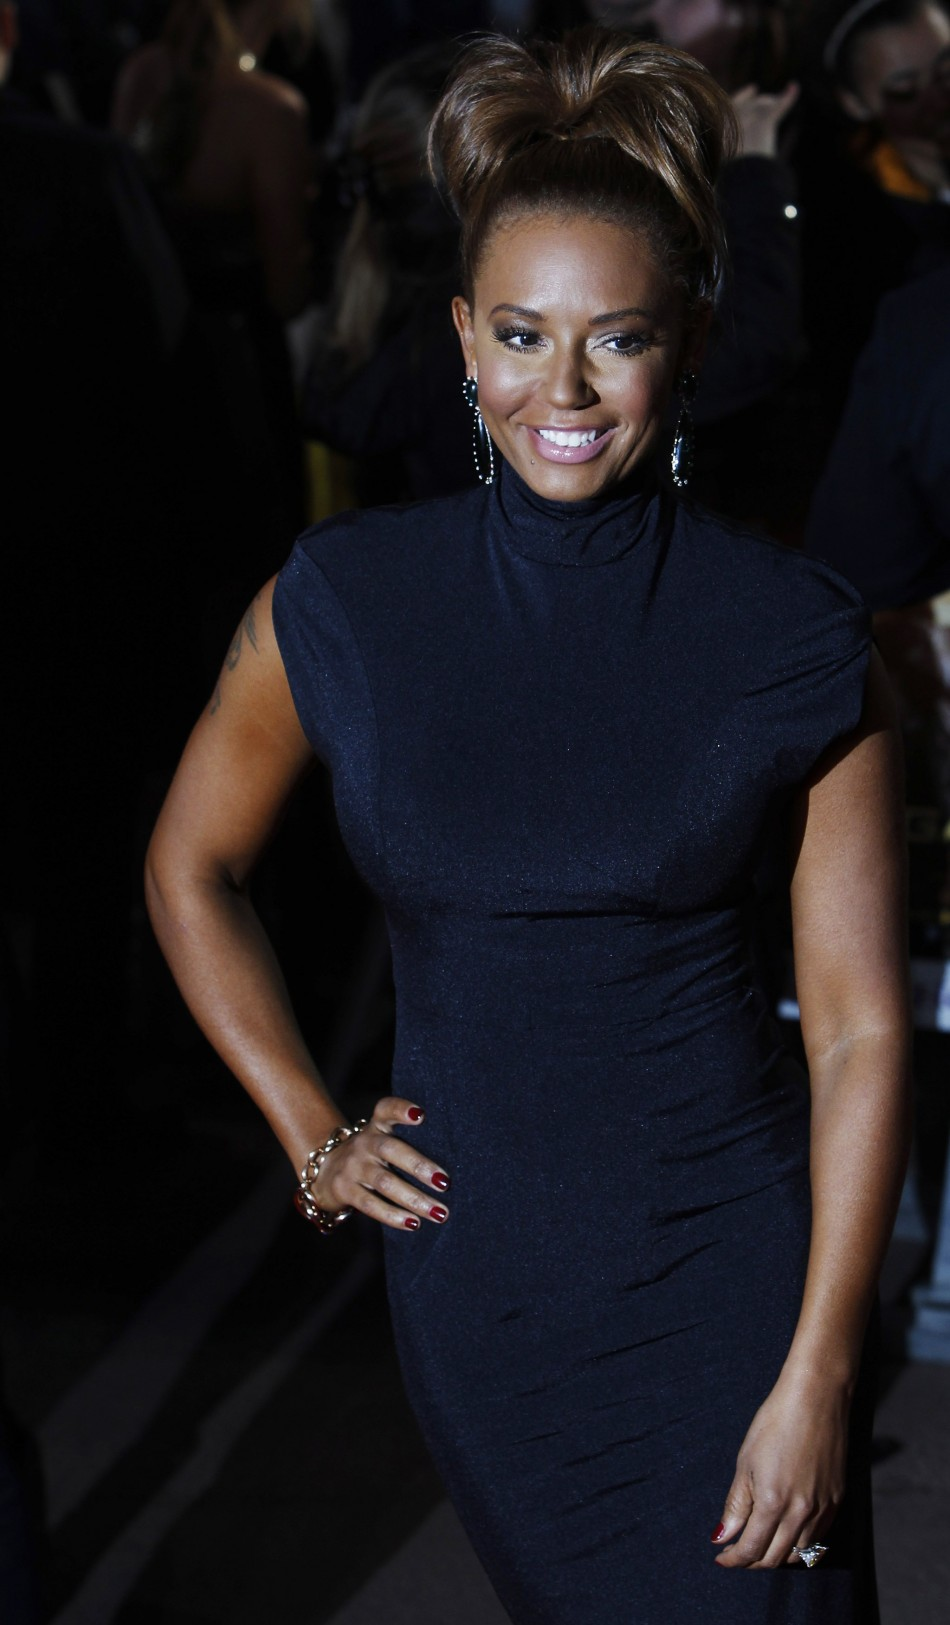 """Singer and former Spice Girl Mel B poses for photographers as she arrives for the European premiere of """"The Hunger Games"""" at the O2 Arena in London"""